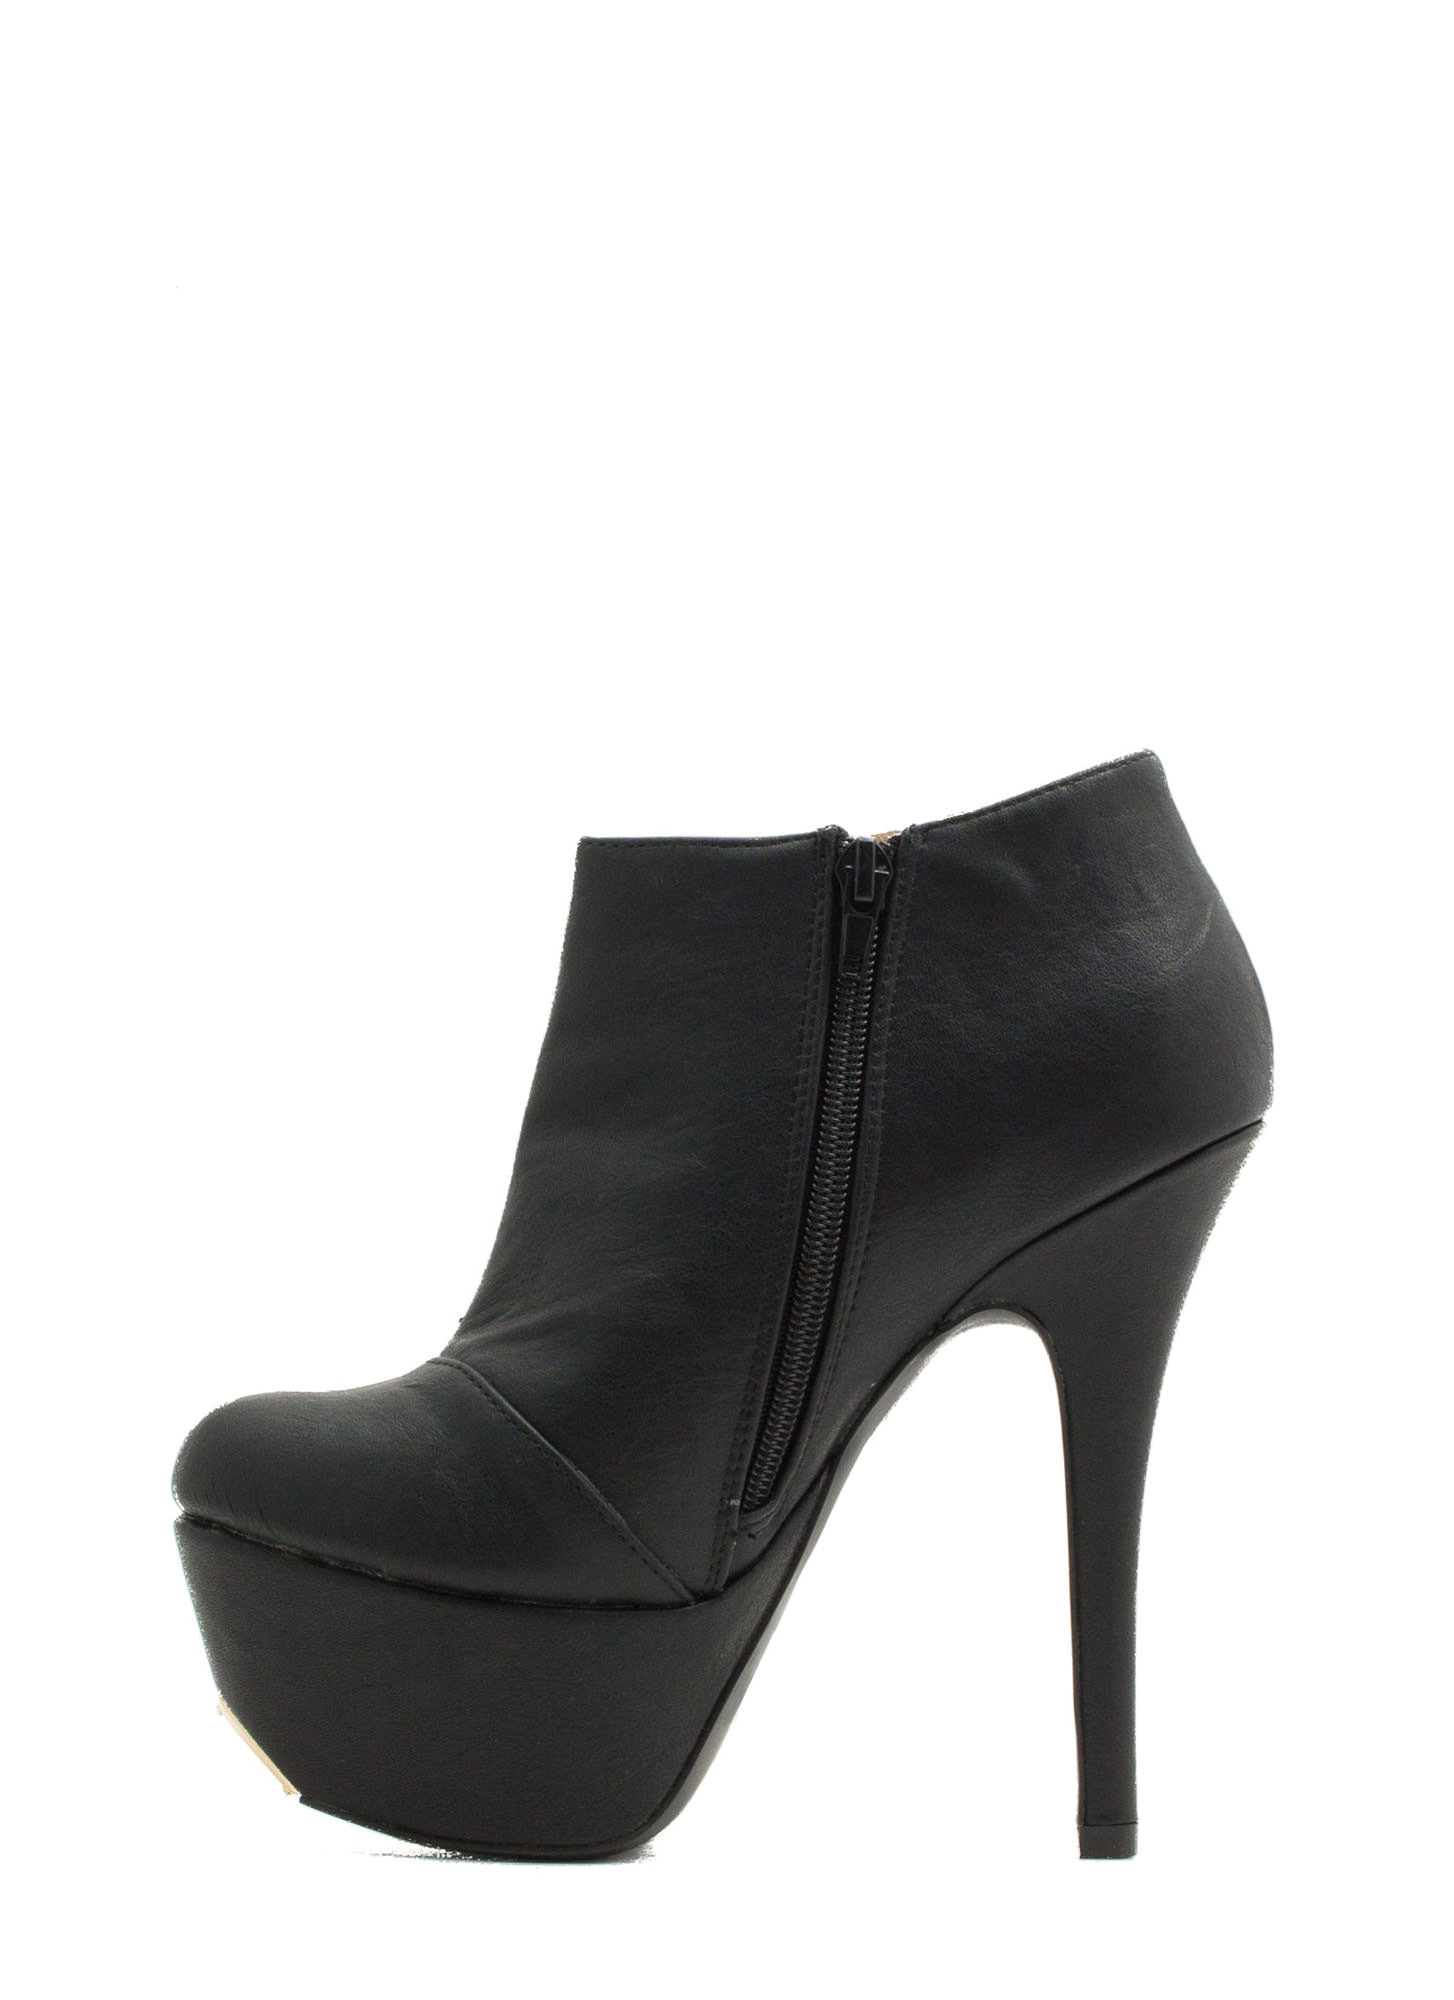 Battle Of Slits Platform Heels BLACK